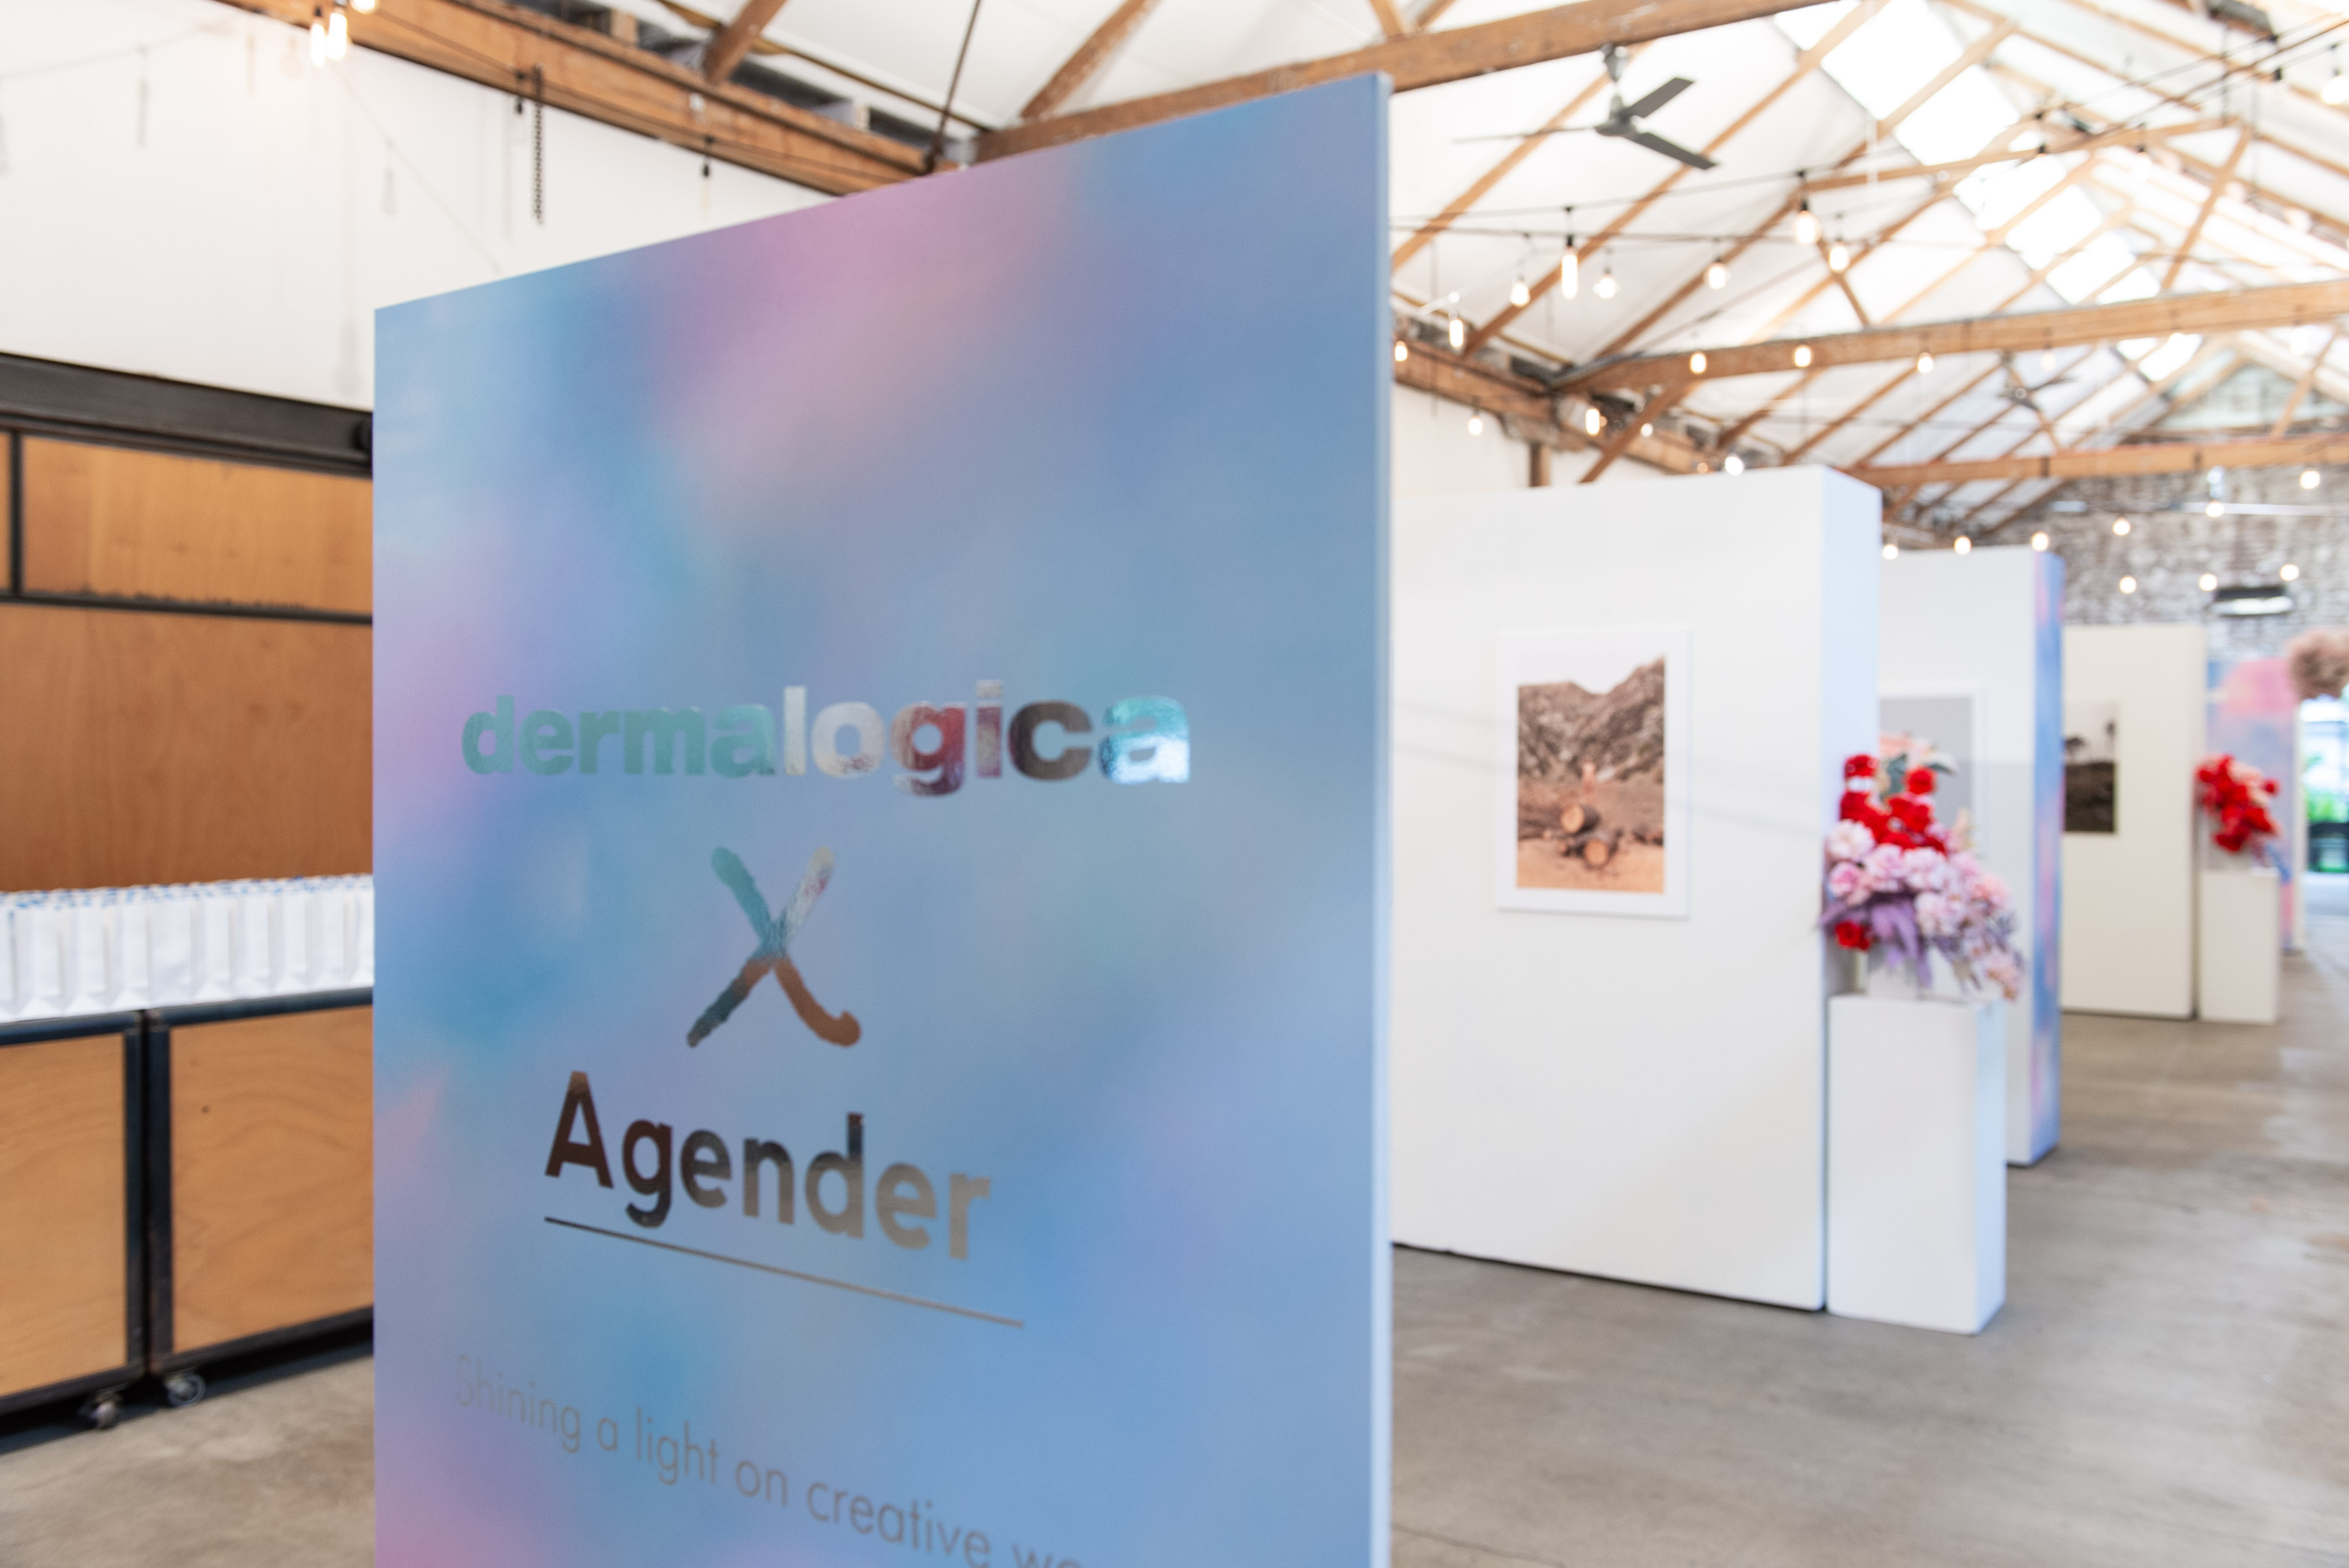 Dermalogica Is Shining A Light On Gender Inequality In The Creative Industries